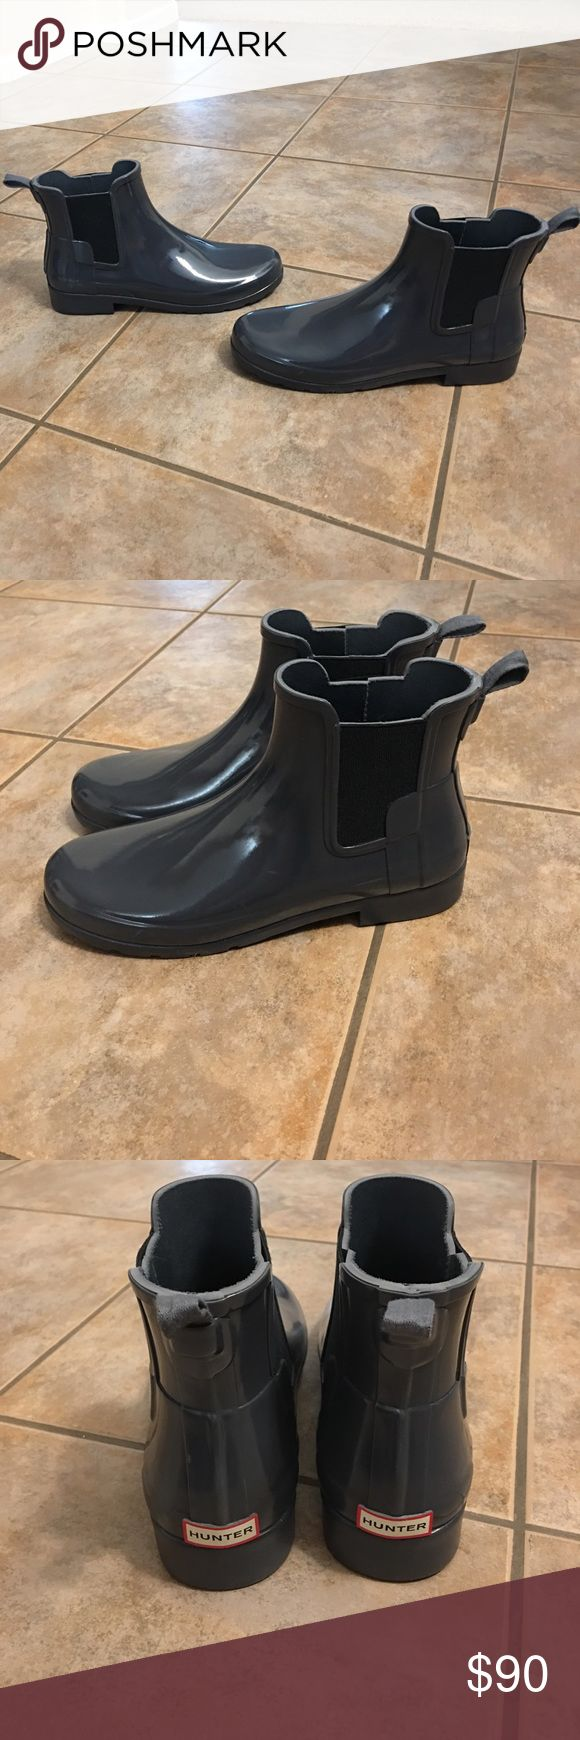 Hunter Refined Chelsea Boot Wellies Shoes sz 9 No Trades, No Box, Freshly Cleaned and gently used, shows little wear on bottom soles Hunter Shoes Ankle Boots & Booties